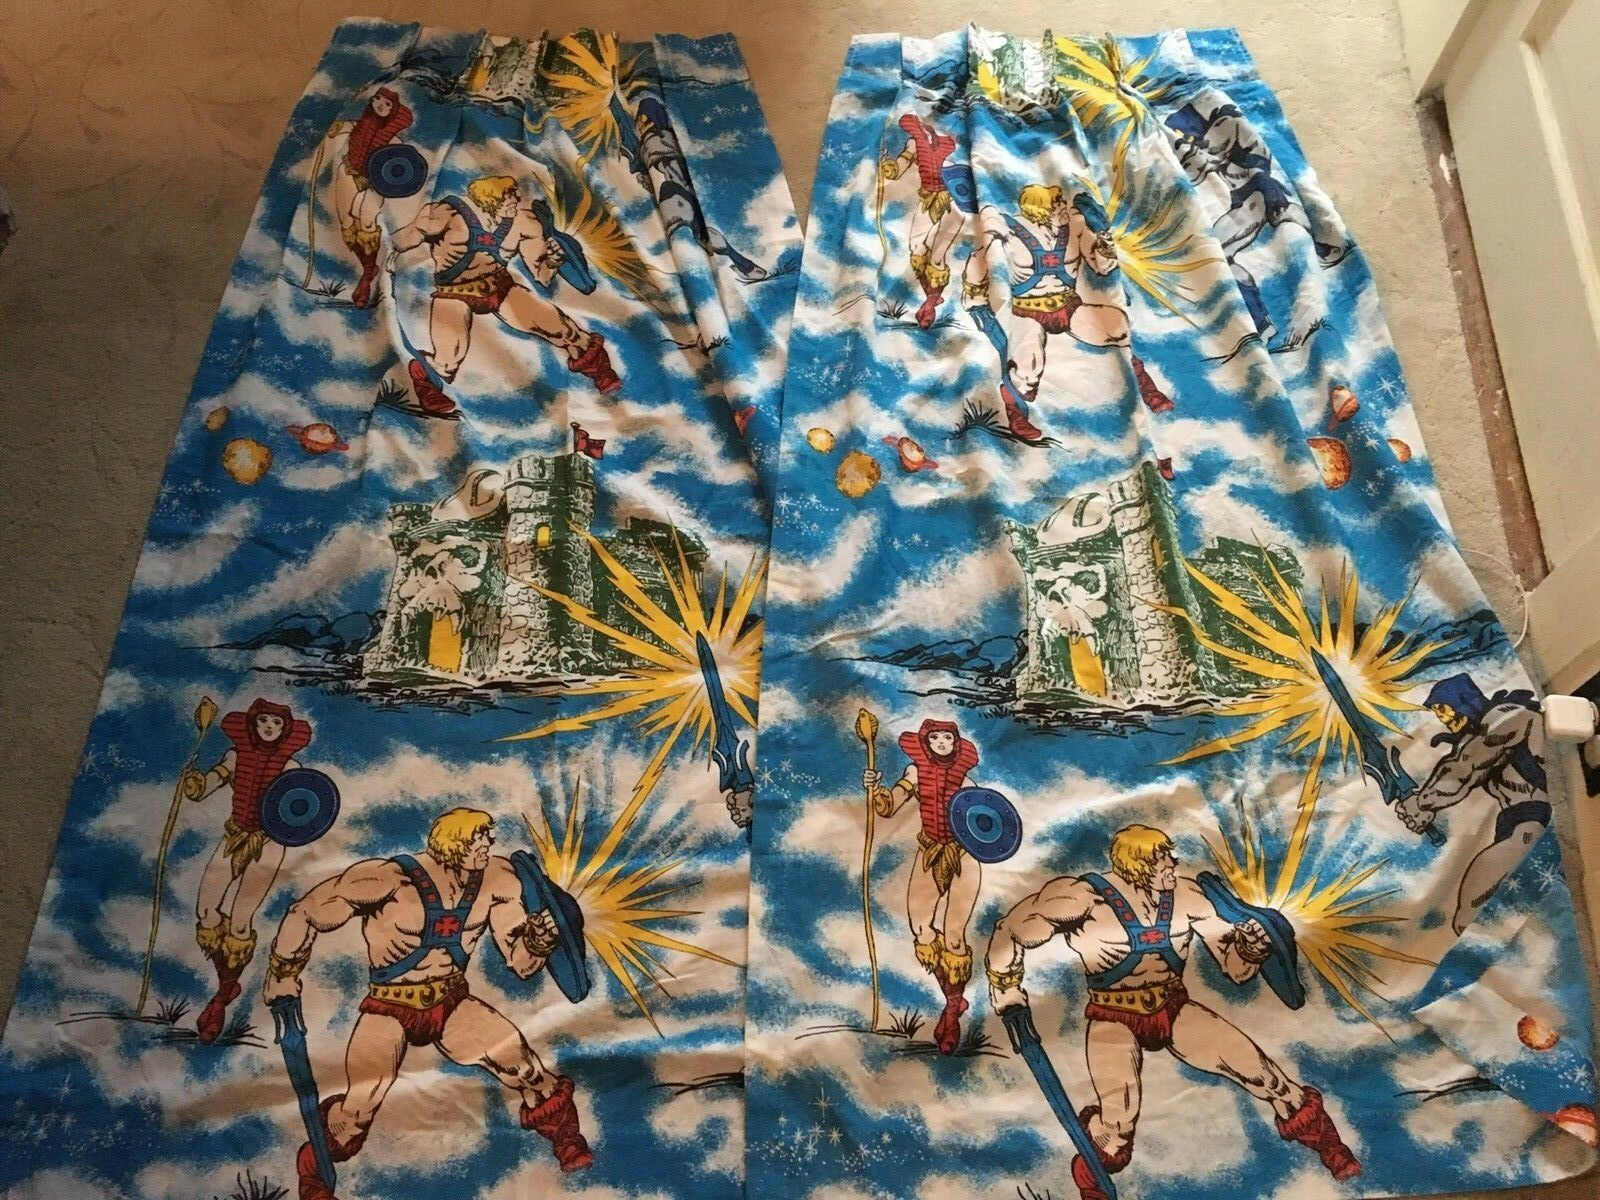 Vintage 1983 He-Man Masters of the Universe MOTU Curtains Drapes 2 Panels CLEAN